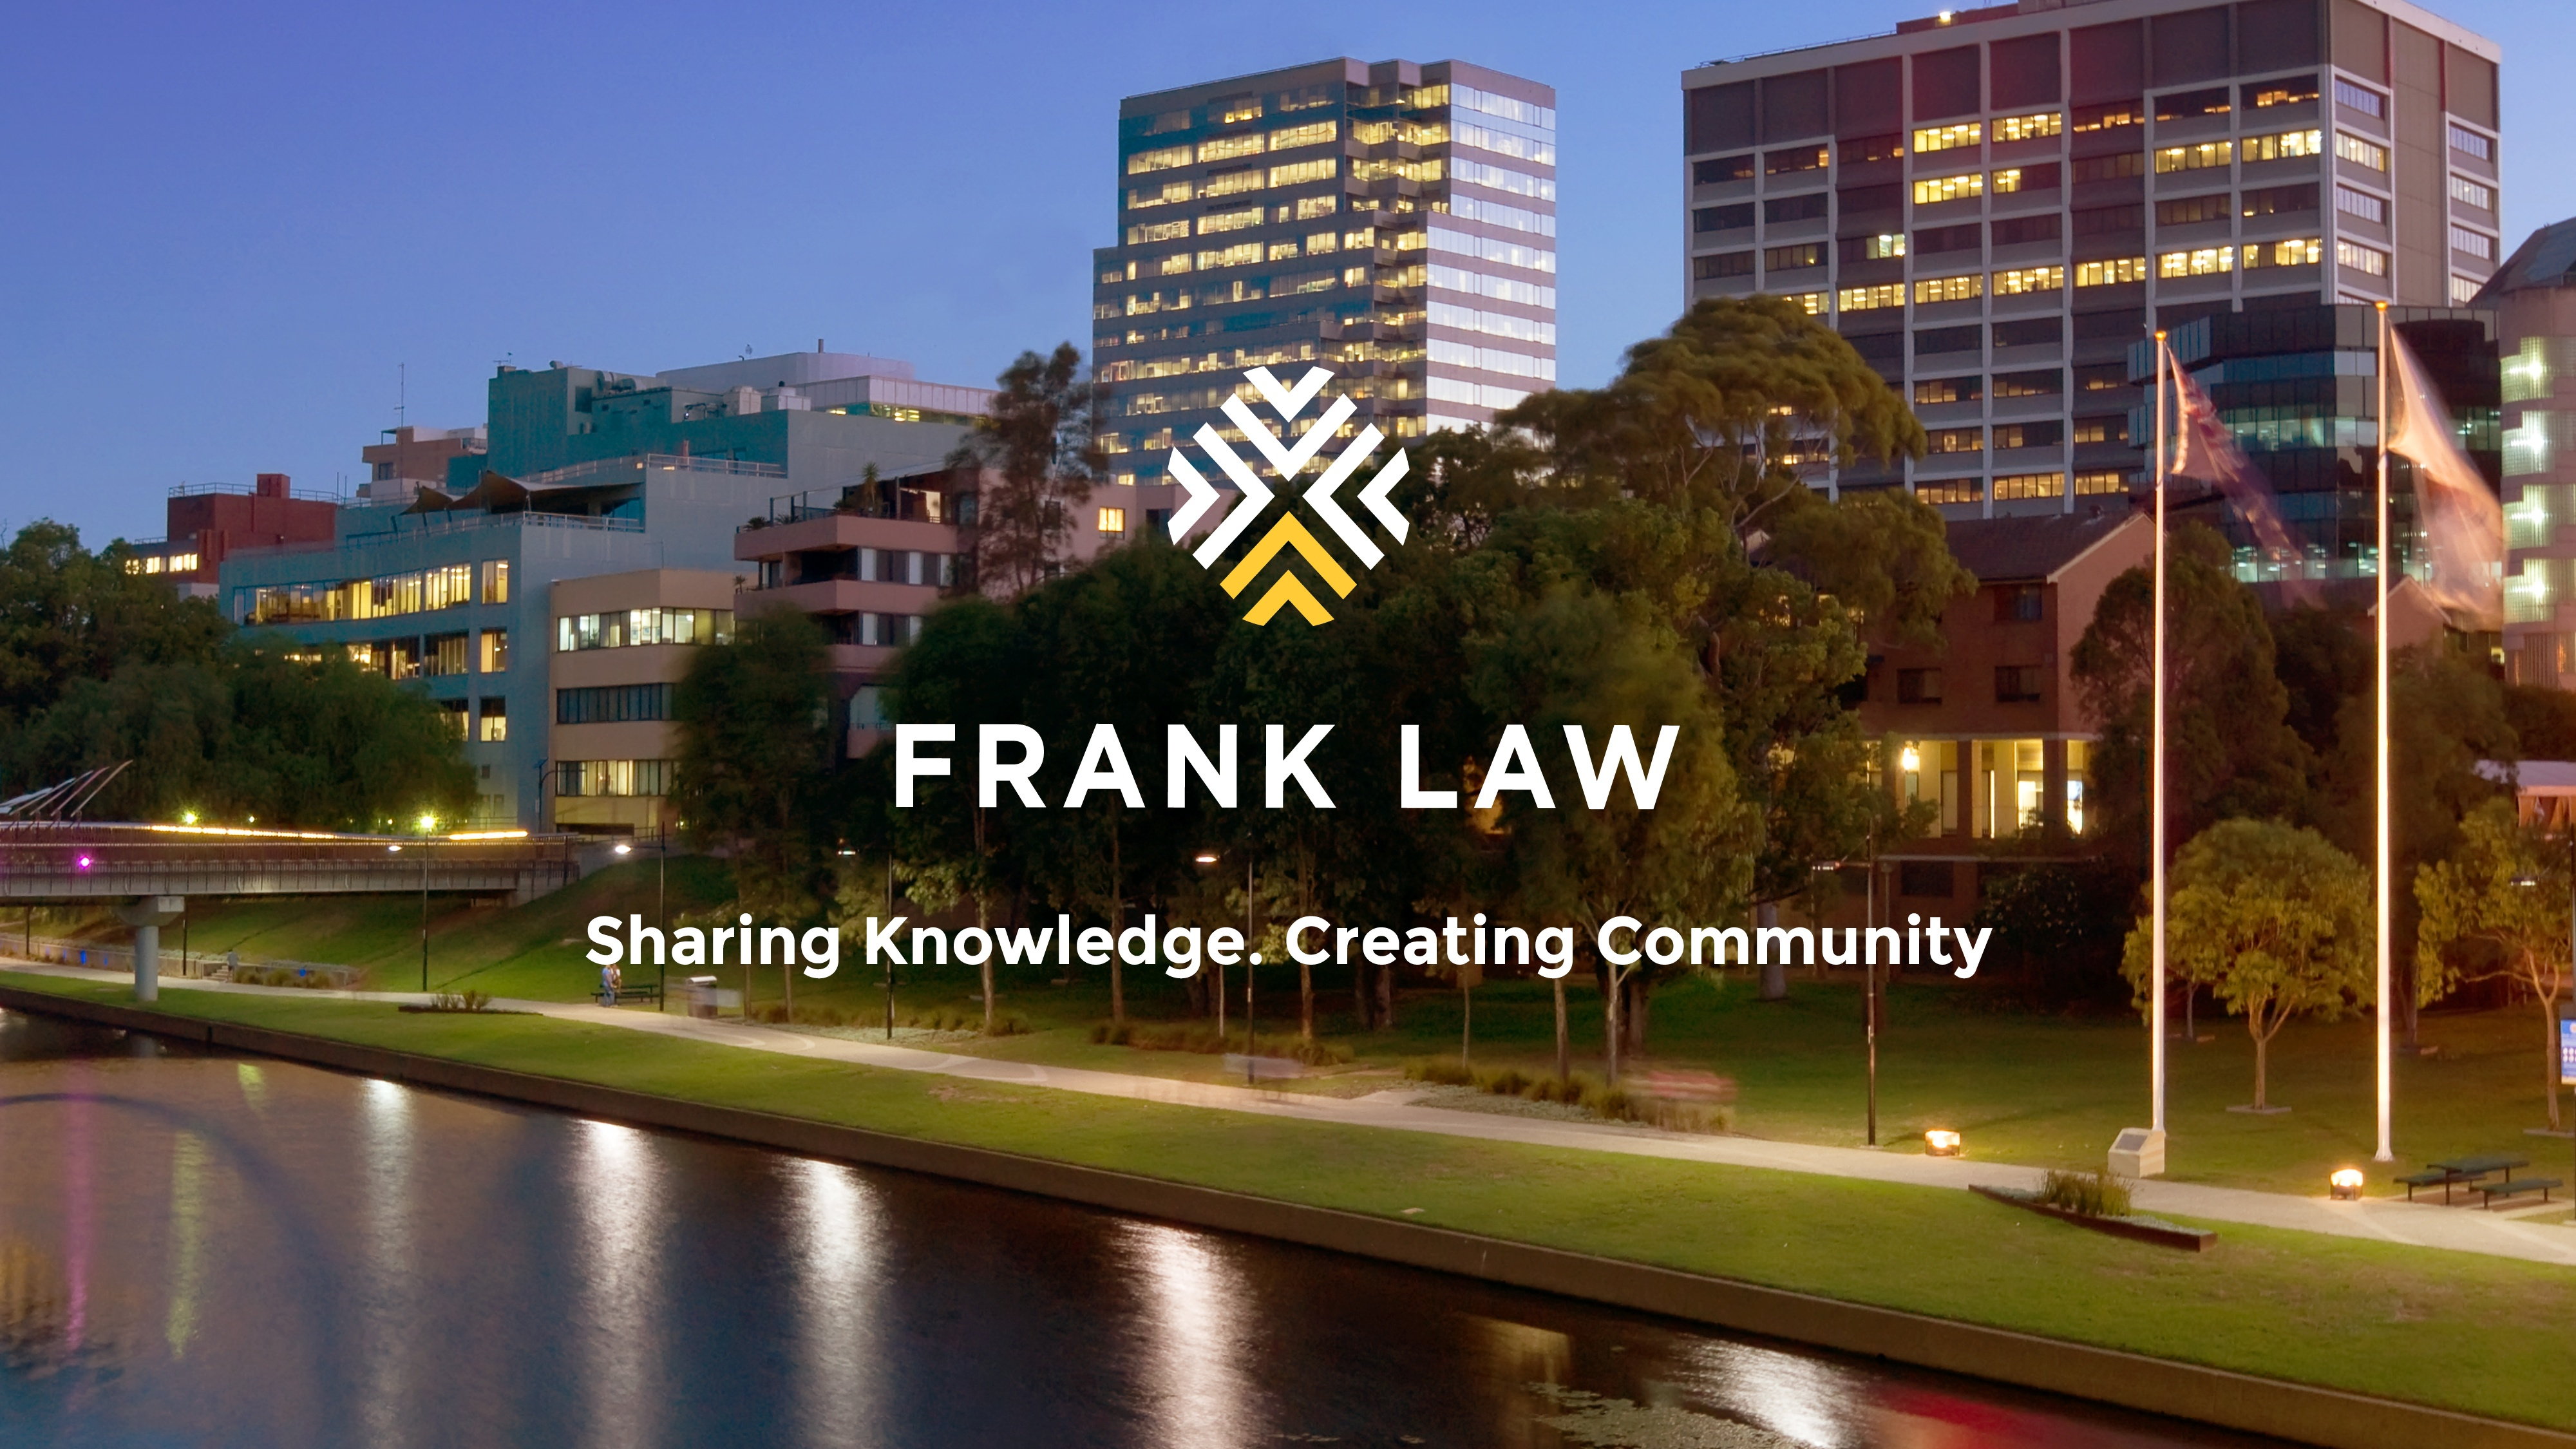 Frank Law graphic